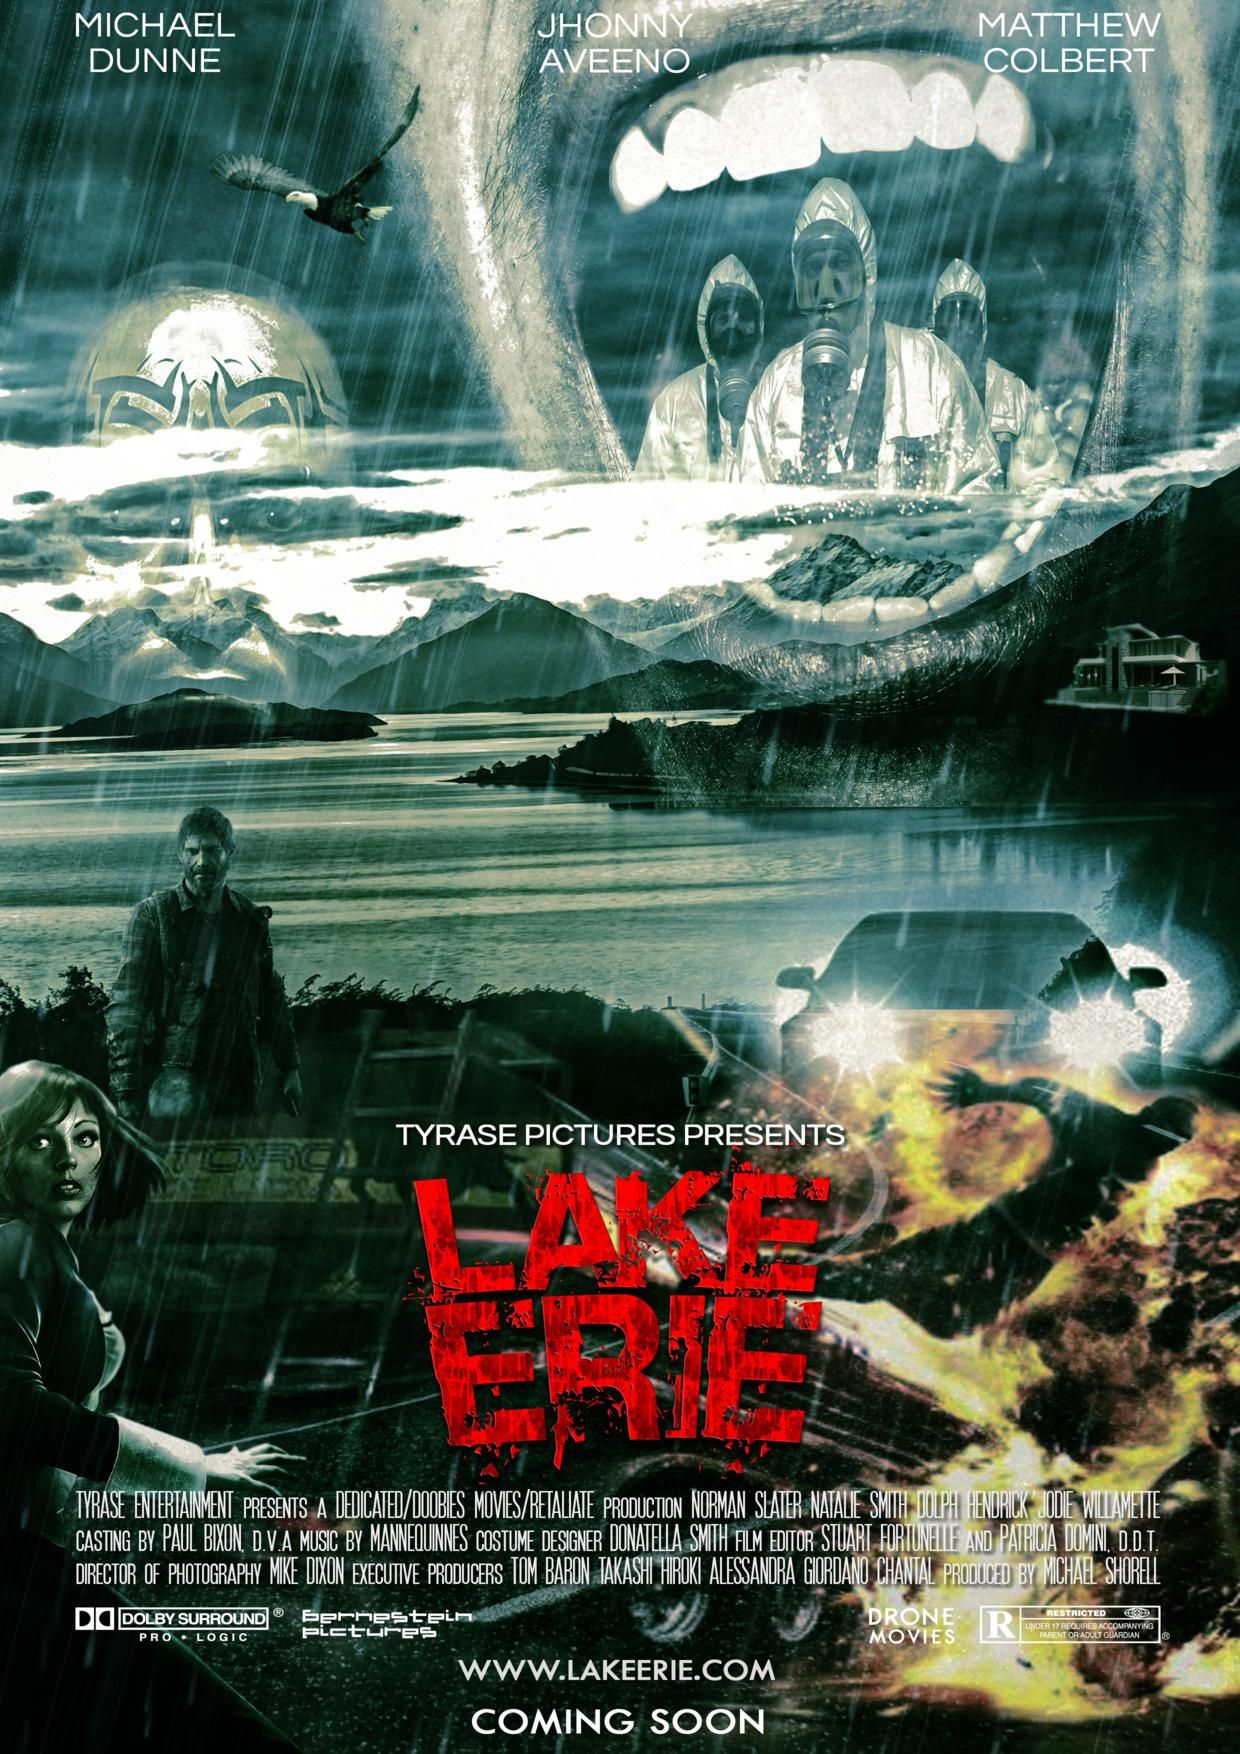 TITLE: LAKE ERIE GENRE: THRILLER/HORROR: LOGLINE: A